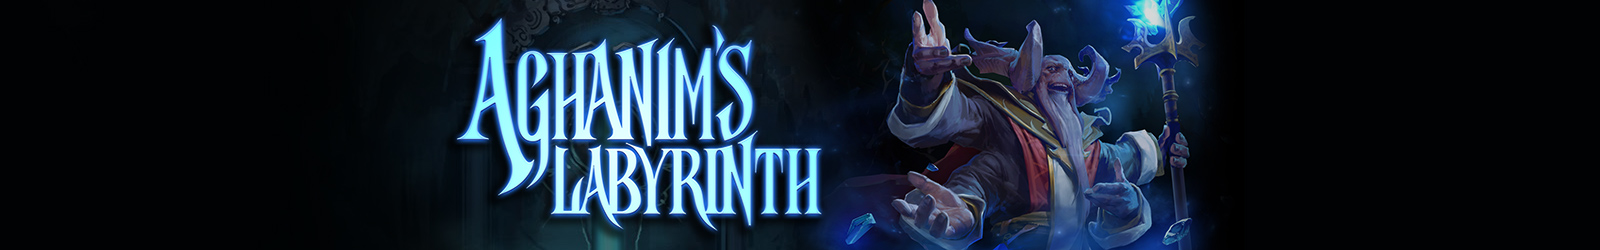 Main Page Giant Banner Aghanim's Labyrinth.jpg